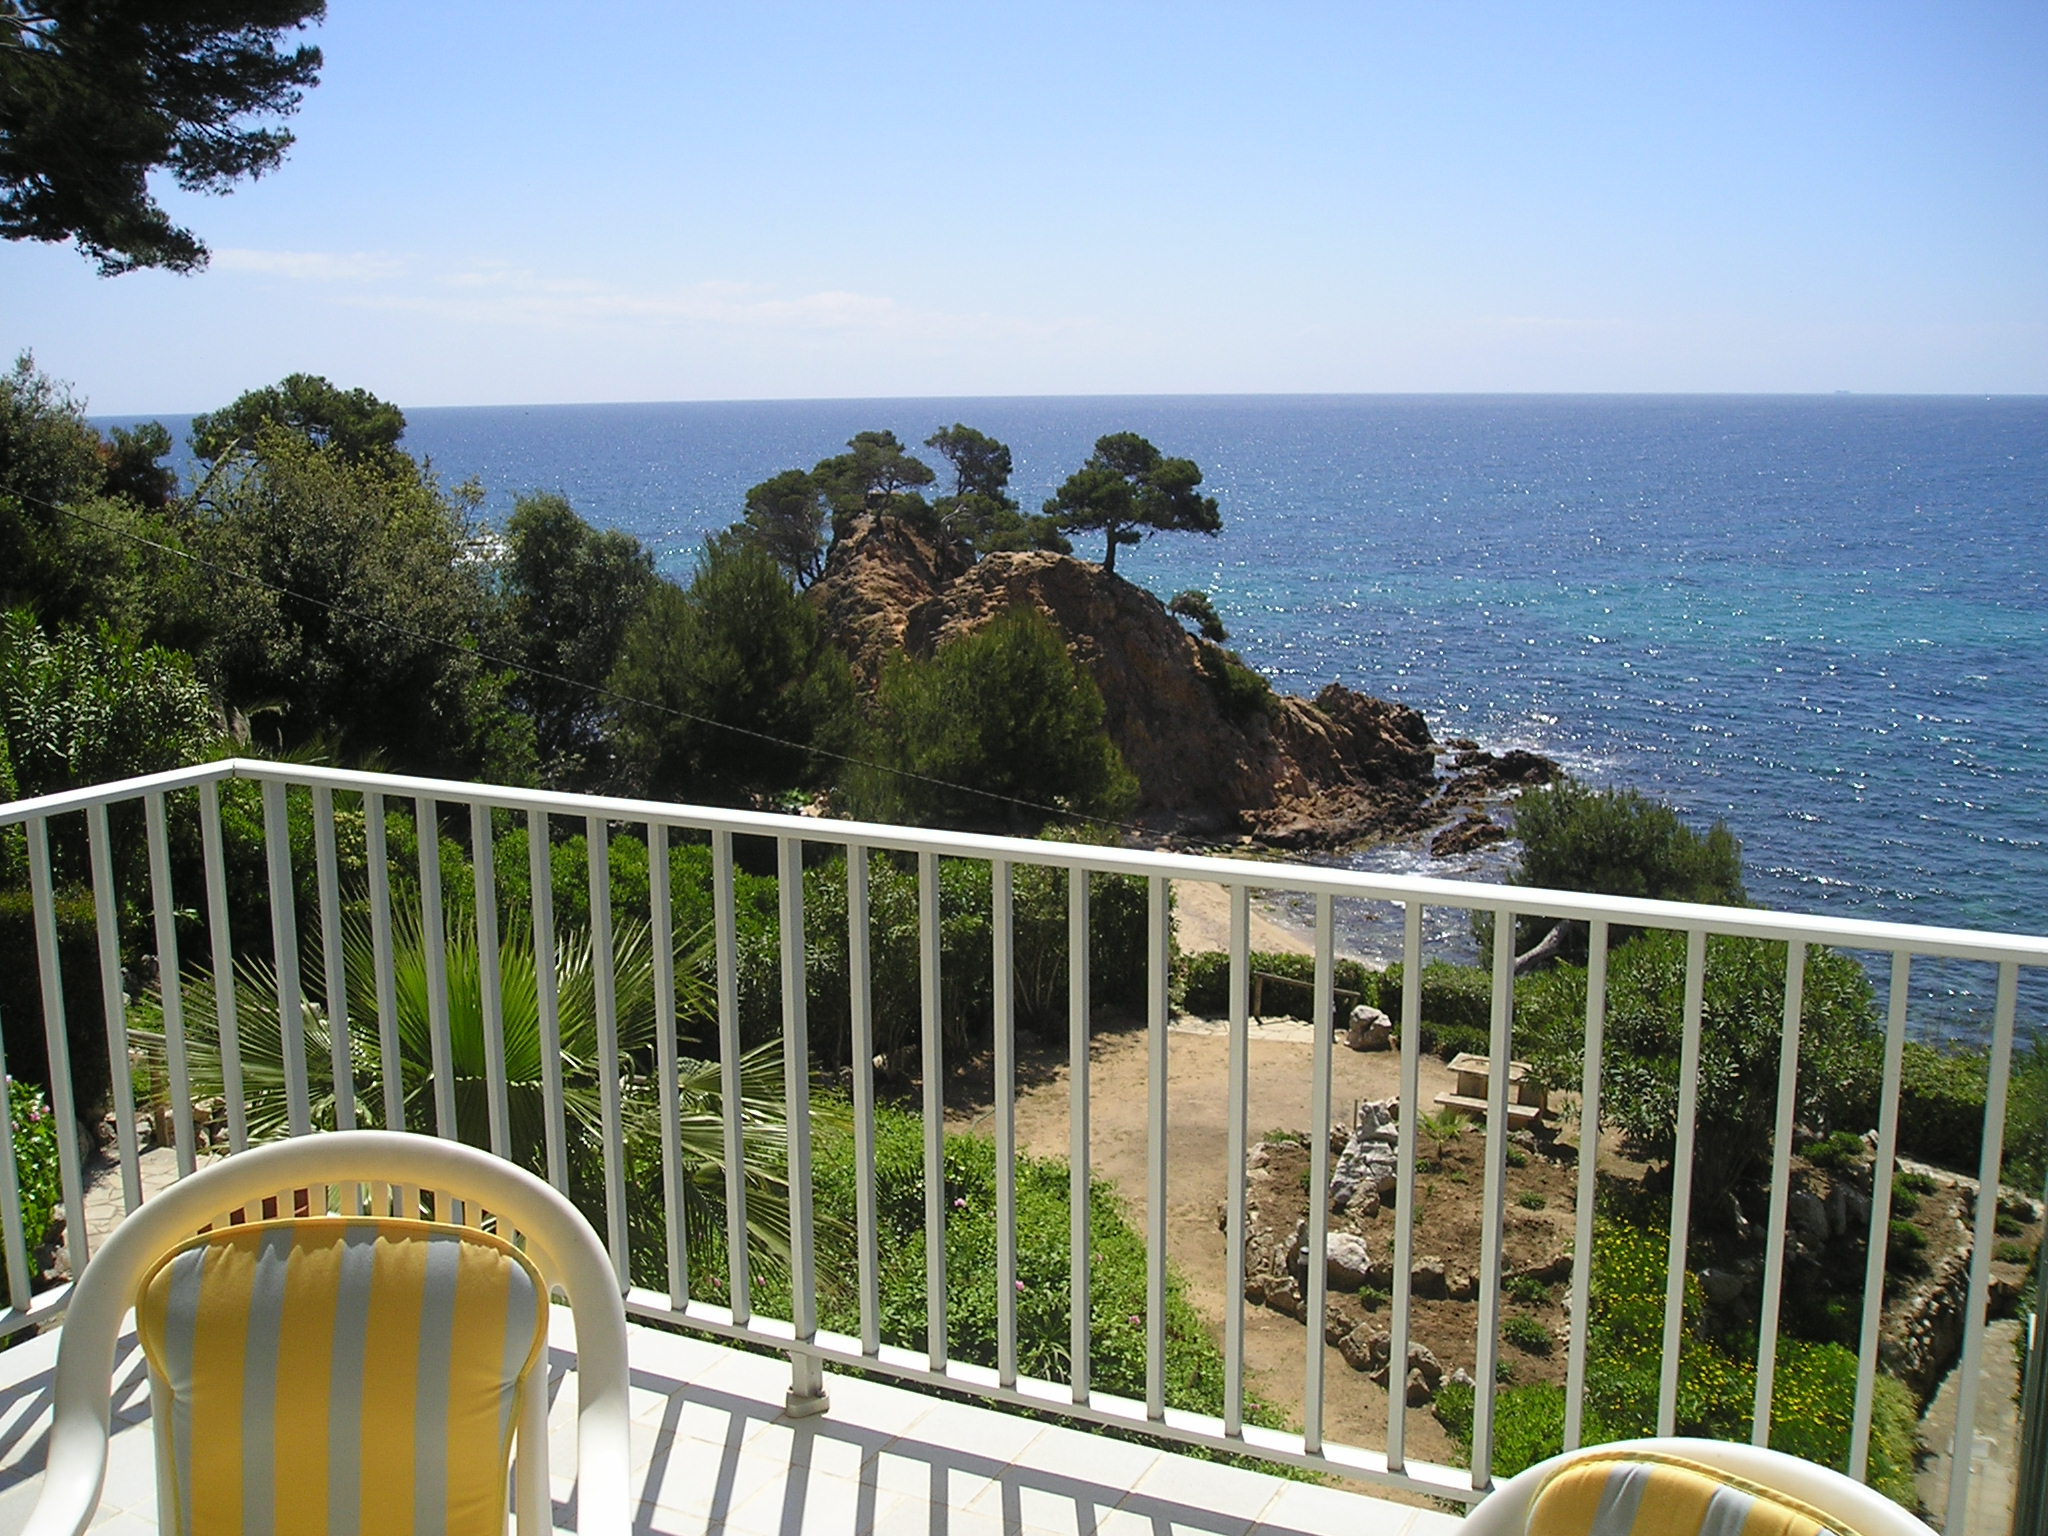 Apartment for Sale at Bright apartment in front of the sea Playa De Aro, Costa Brava 17250 Spain